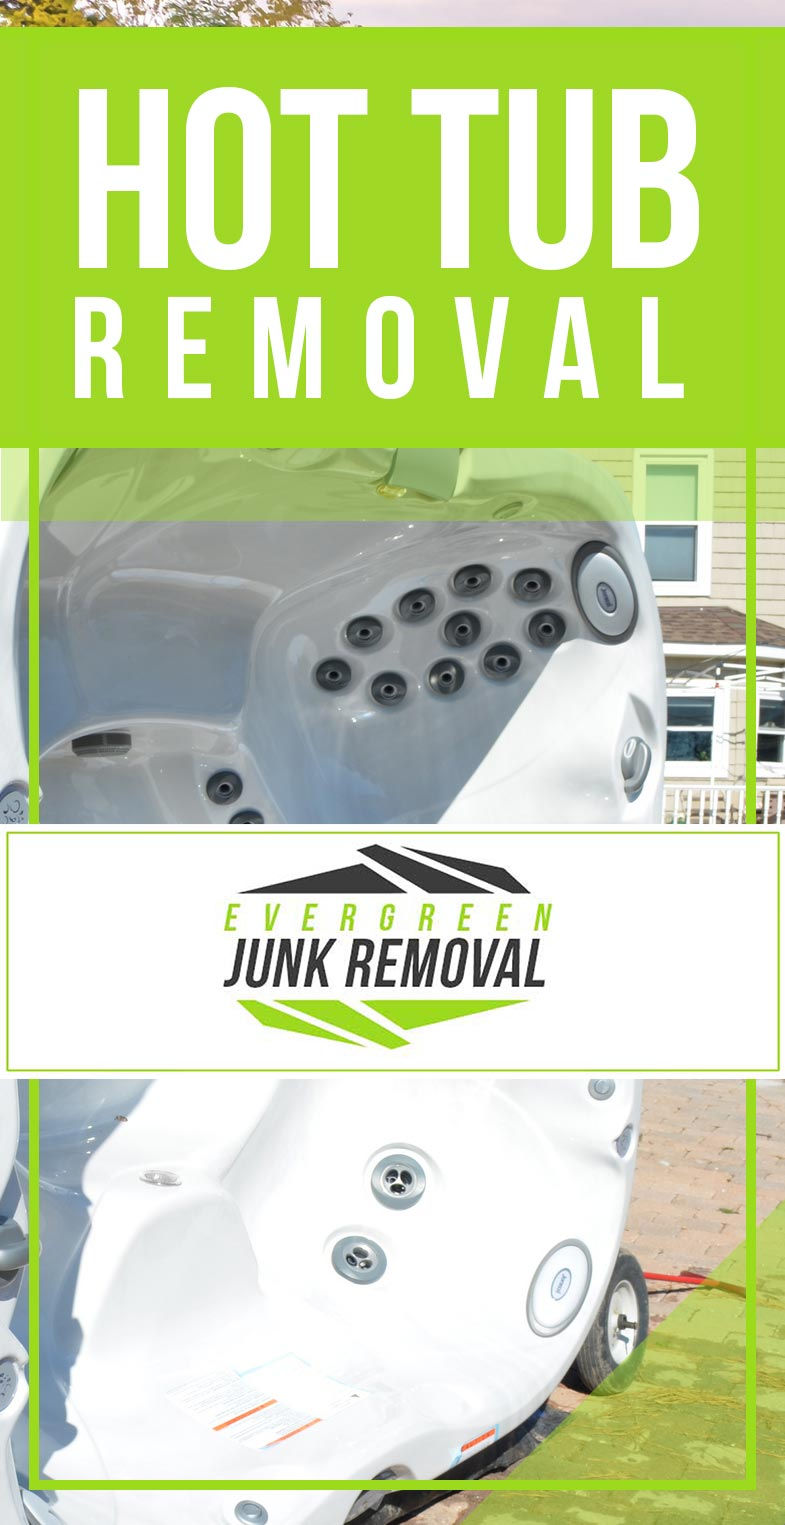 Altamonte-Springs-Hot-Tub-Removal